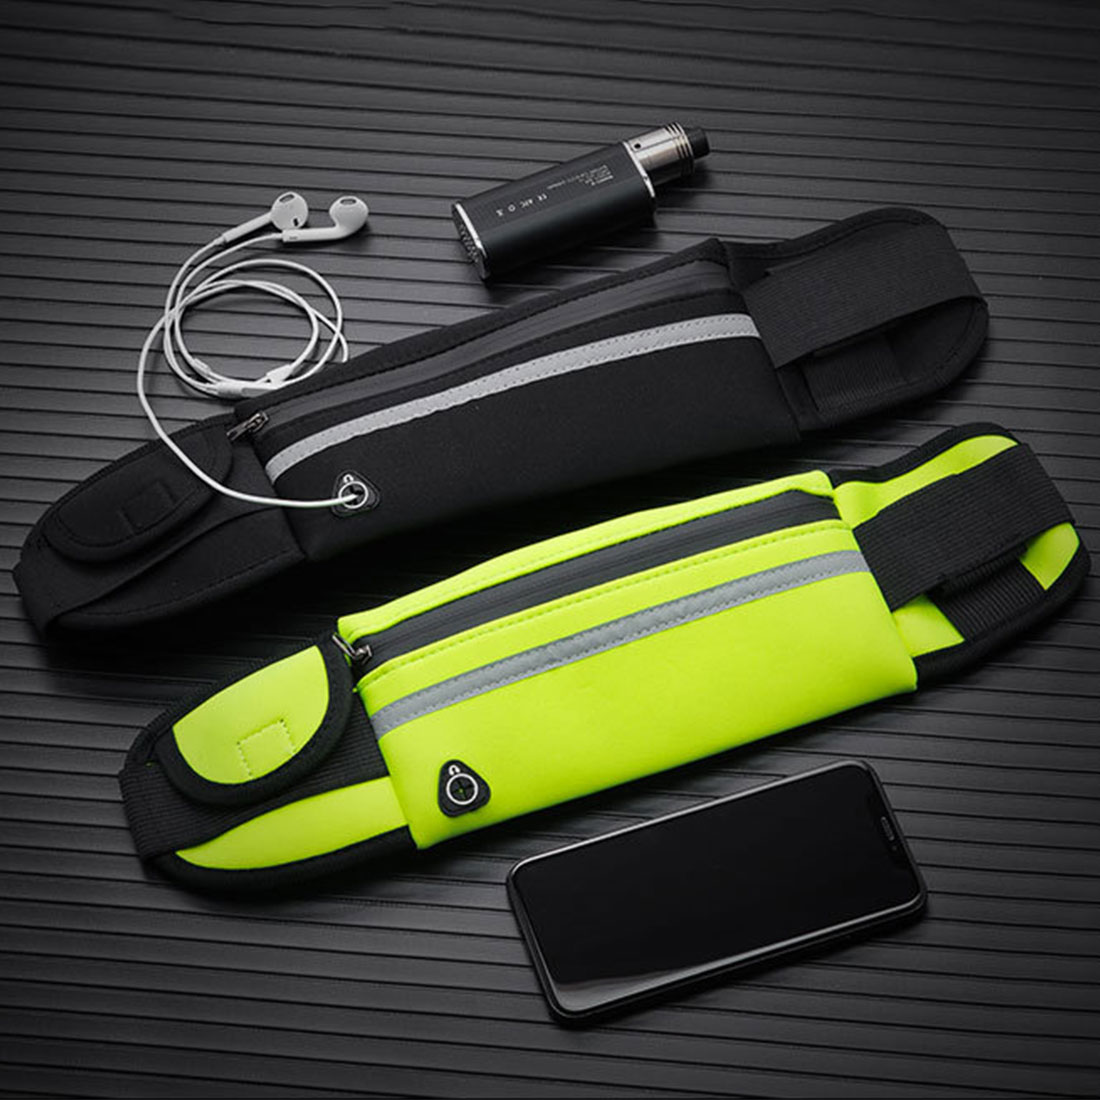 Belt Waist-Bag Belly-Bag Phone-Container Sport-Accessories Gym Hiking Jogging Waterproof